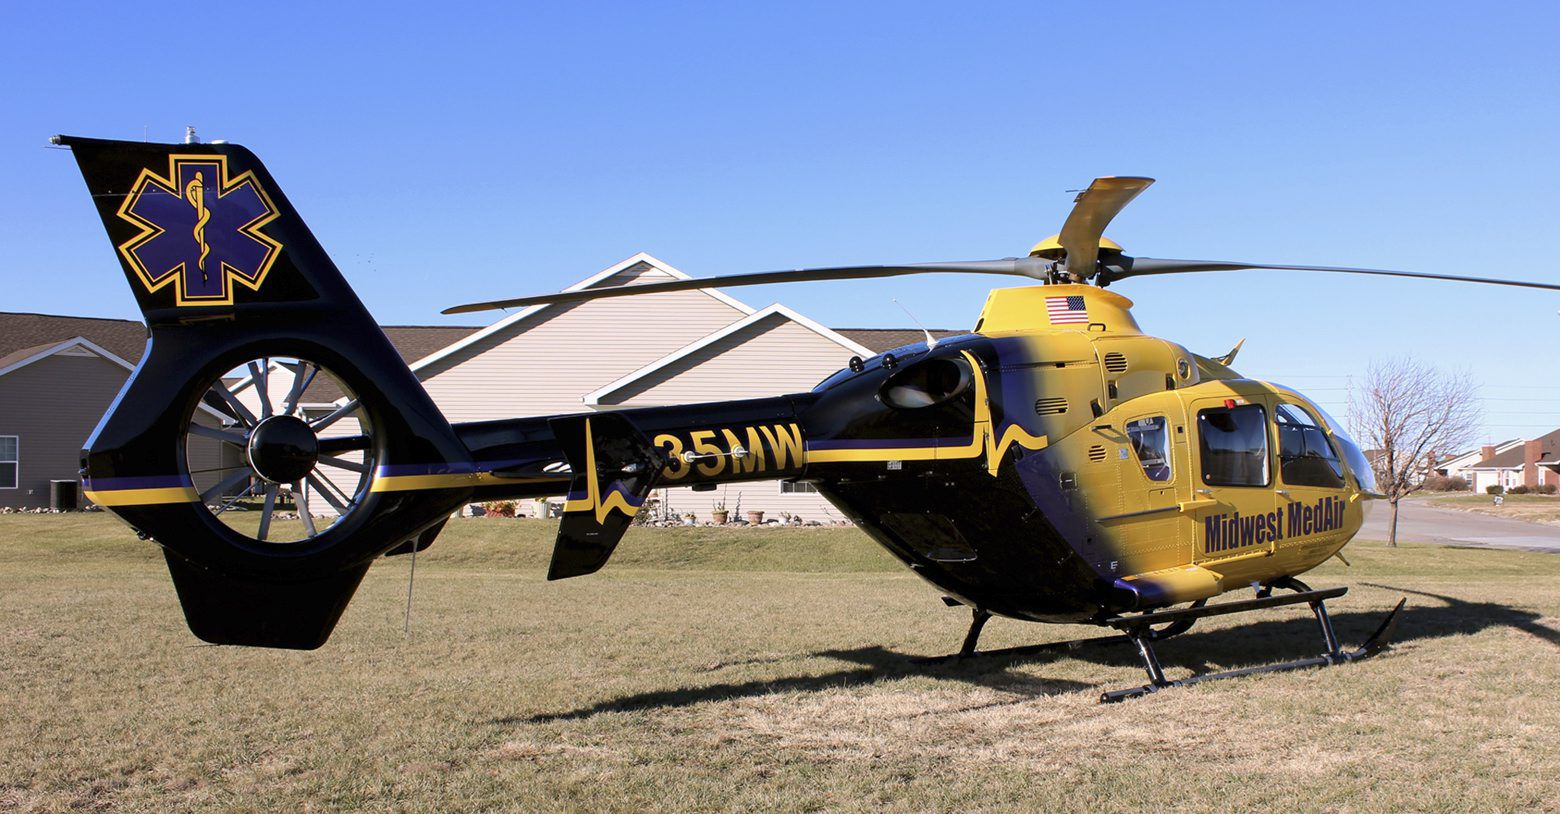 Midwest Medical Transport has a Eurocopter EC135